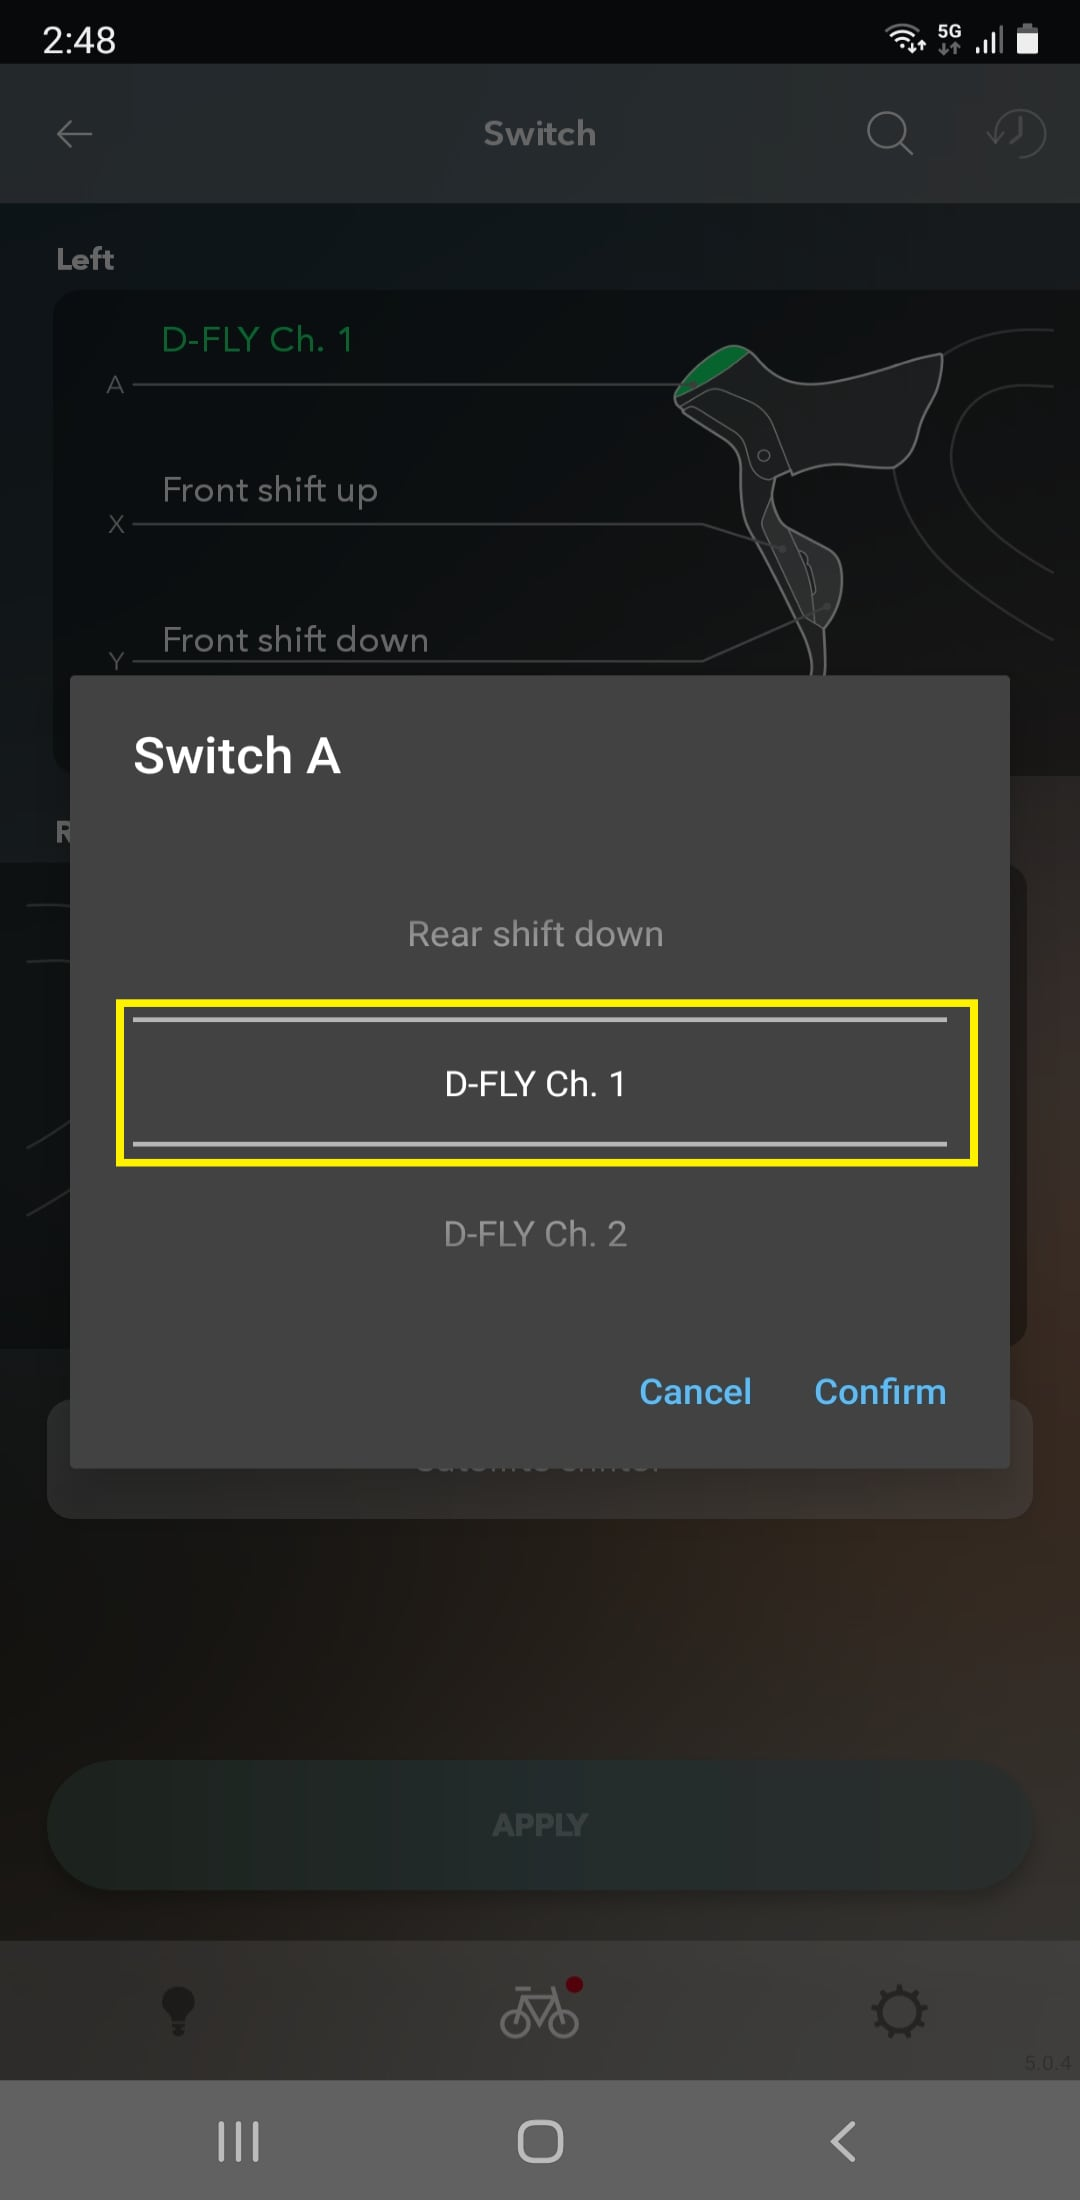 Select a D-FLY channel from 1 to 4.